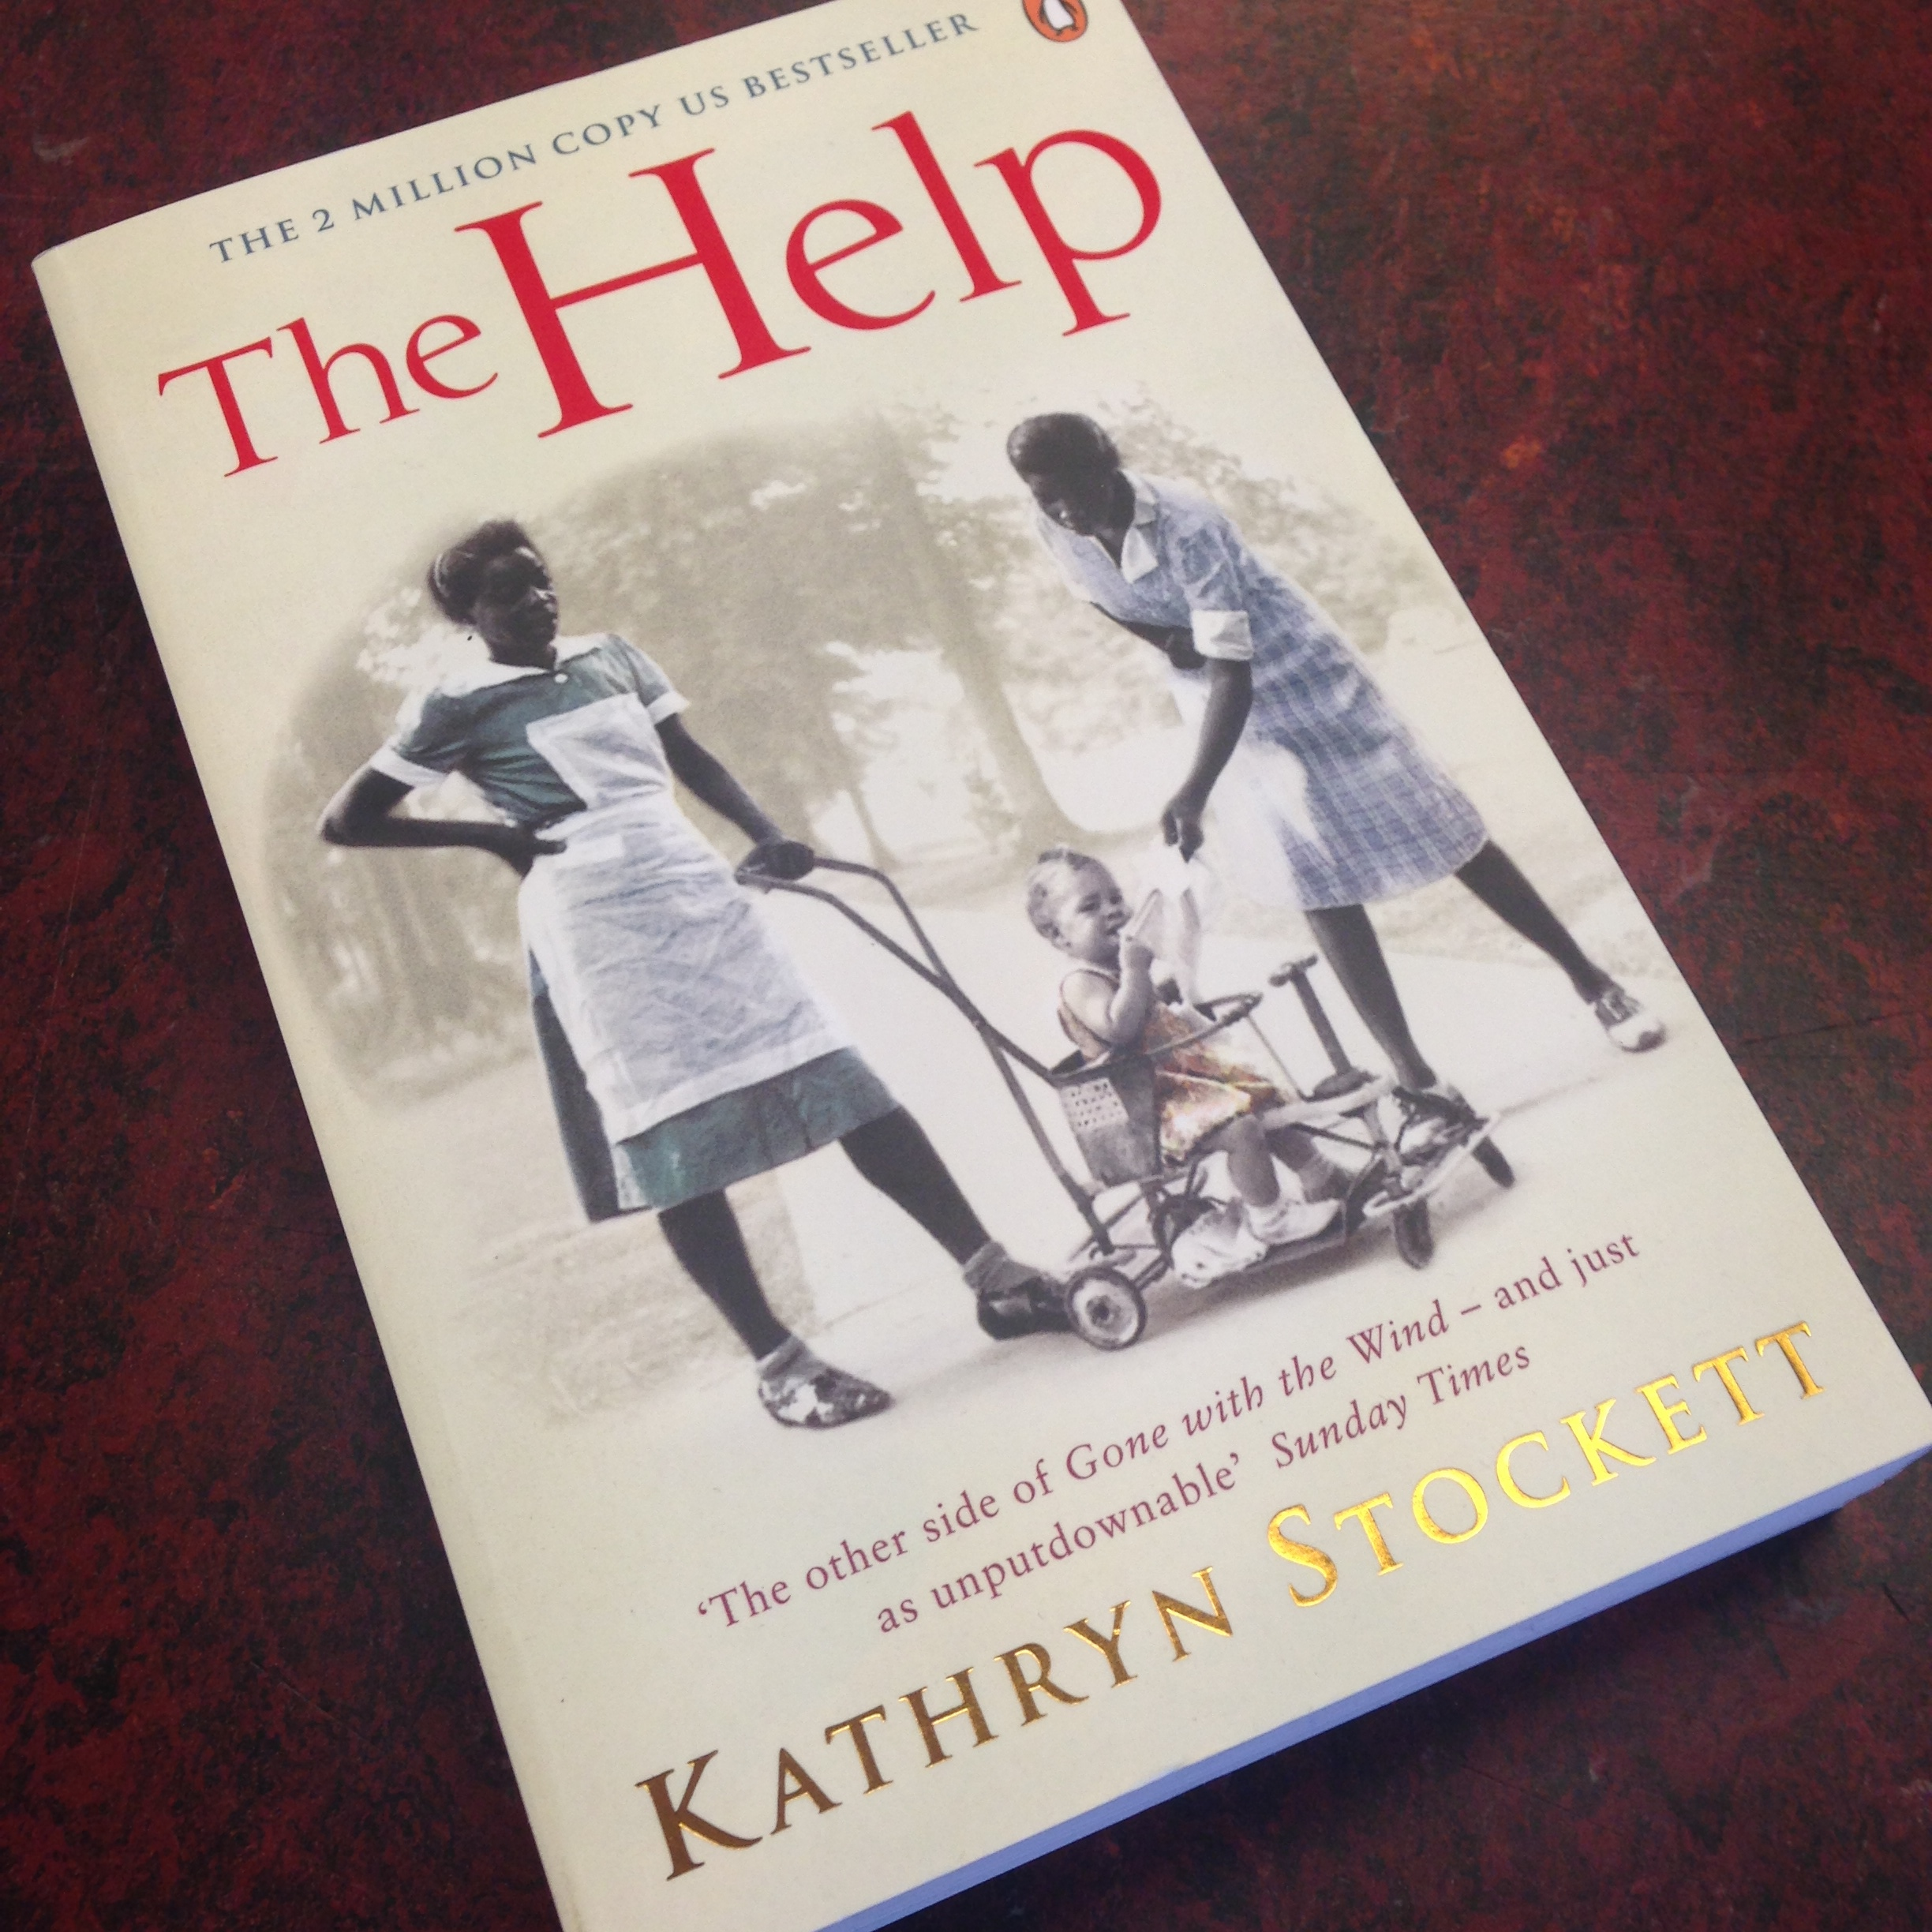 Most Chocolatey novel: The Help and Like Water for Chocolate #bookadayUK